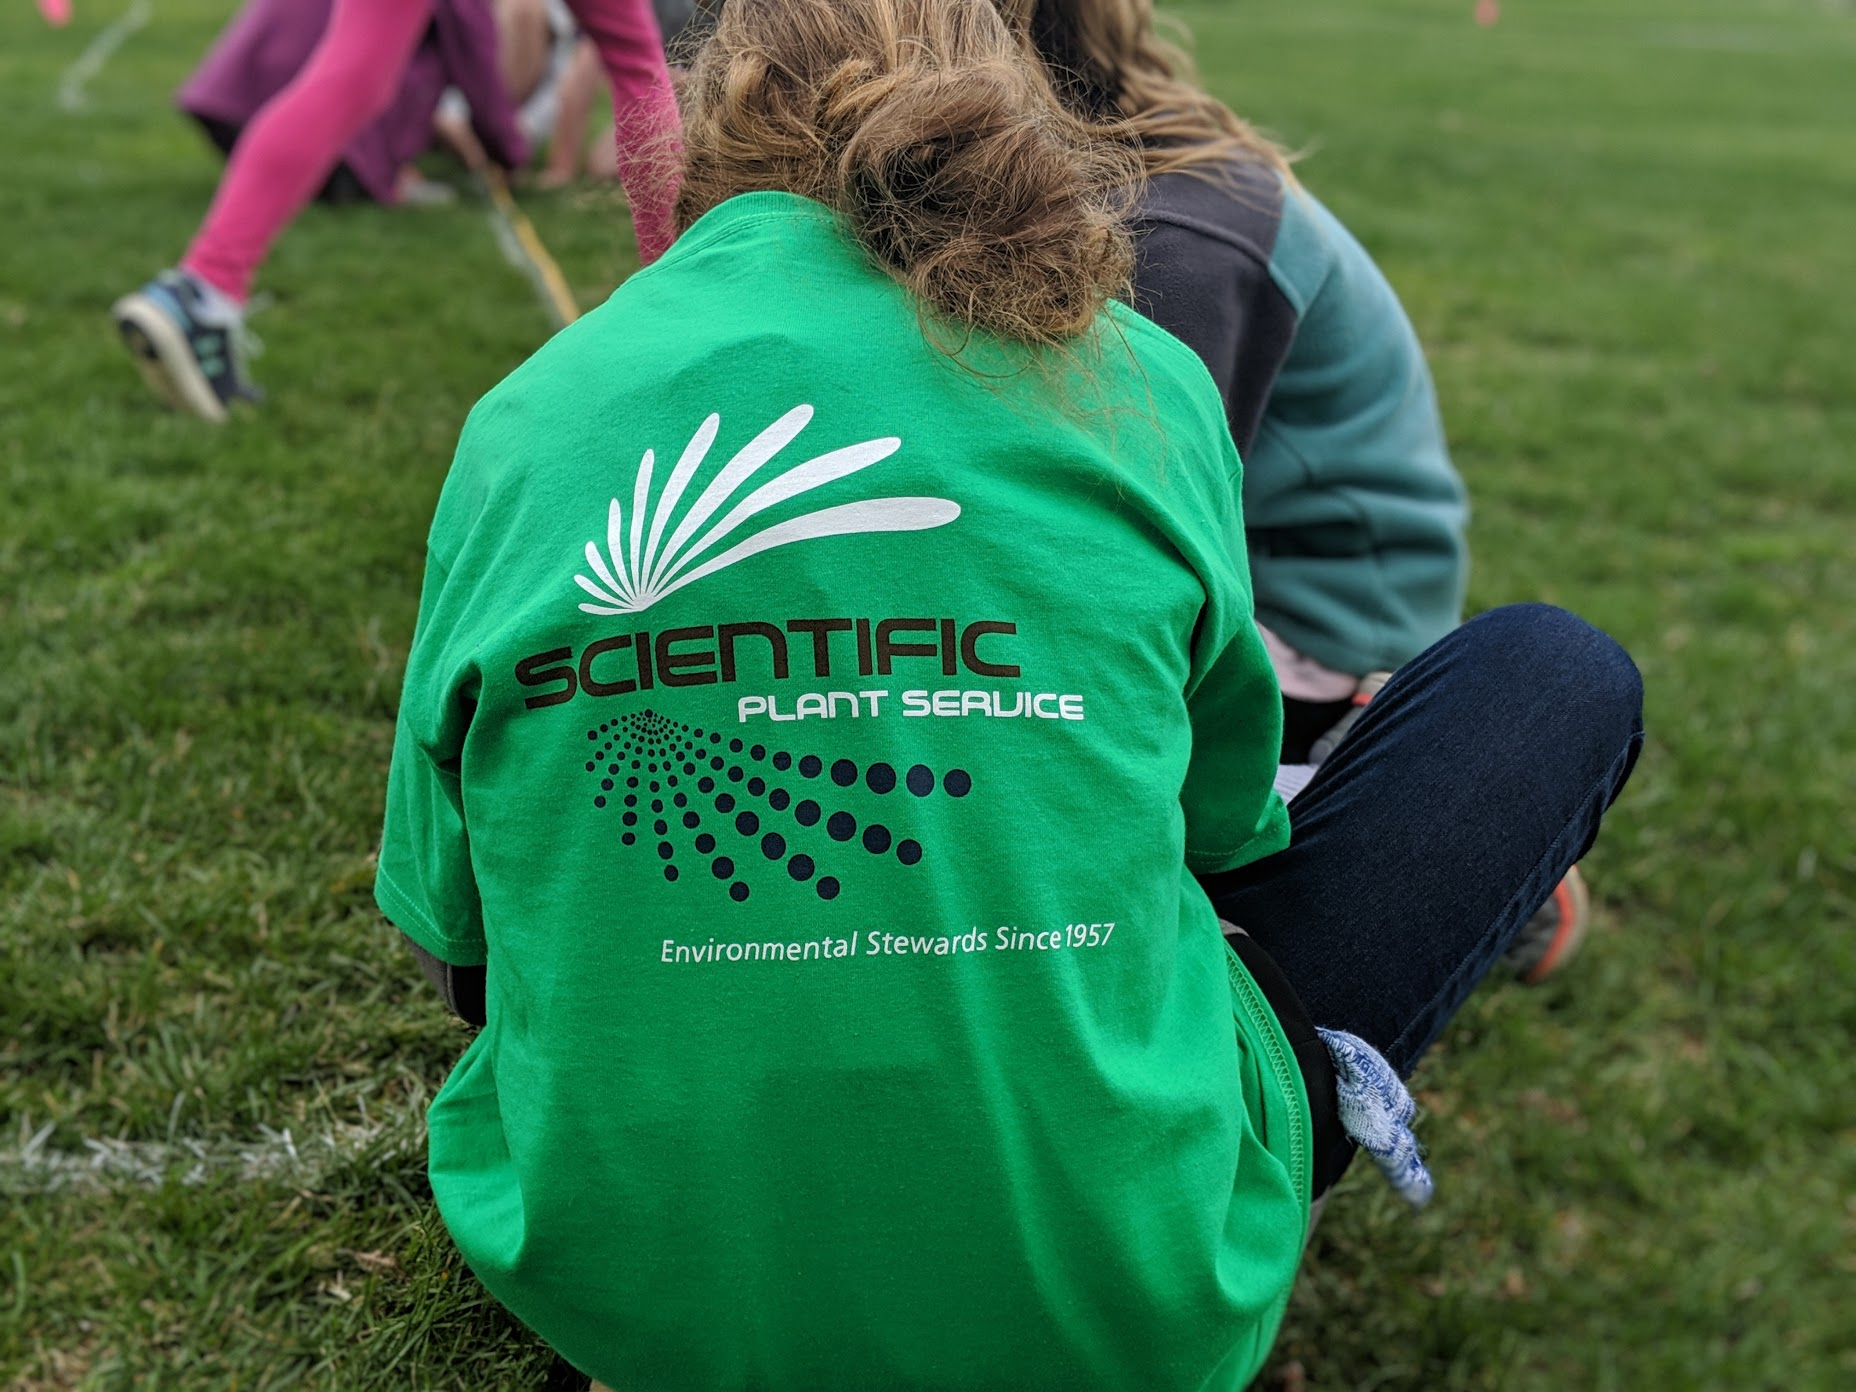 Scientific Plant Service is proud to be a sponsor and volunteer at the Field Trip event at Westminster National Golf Club.